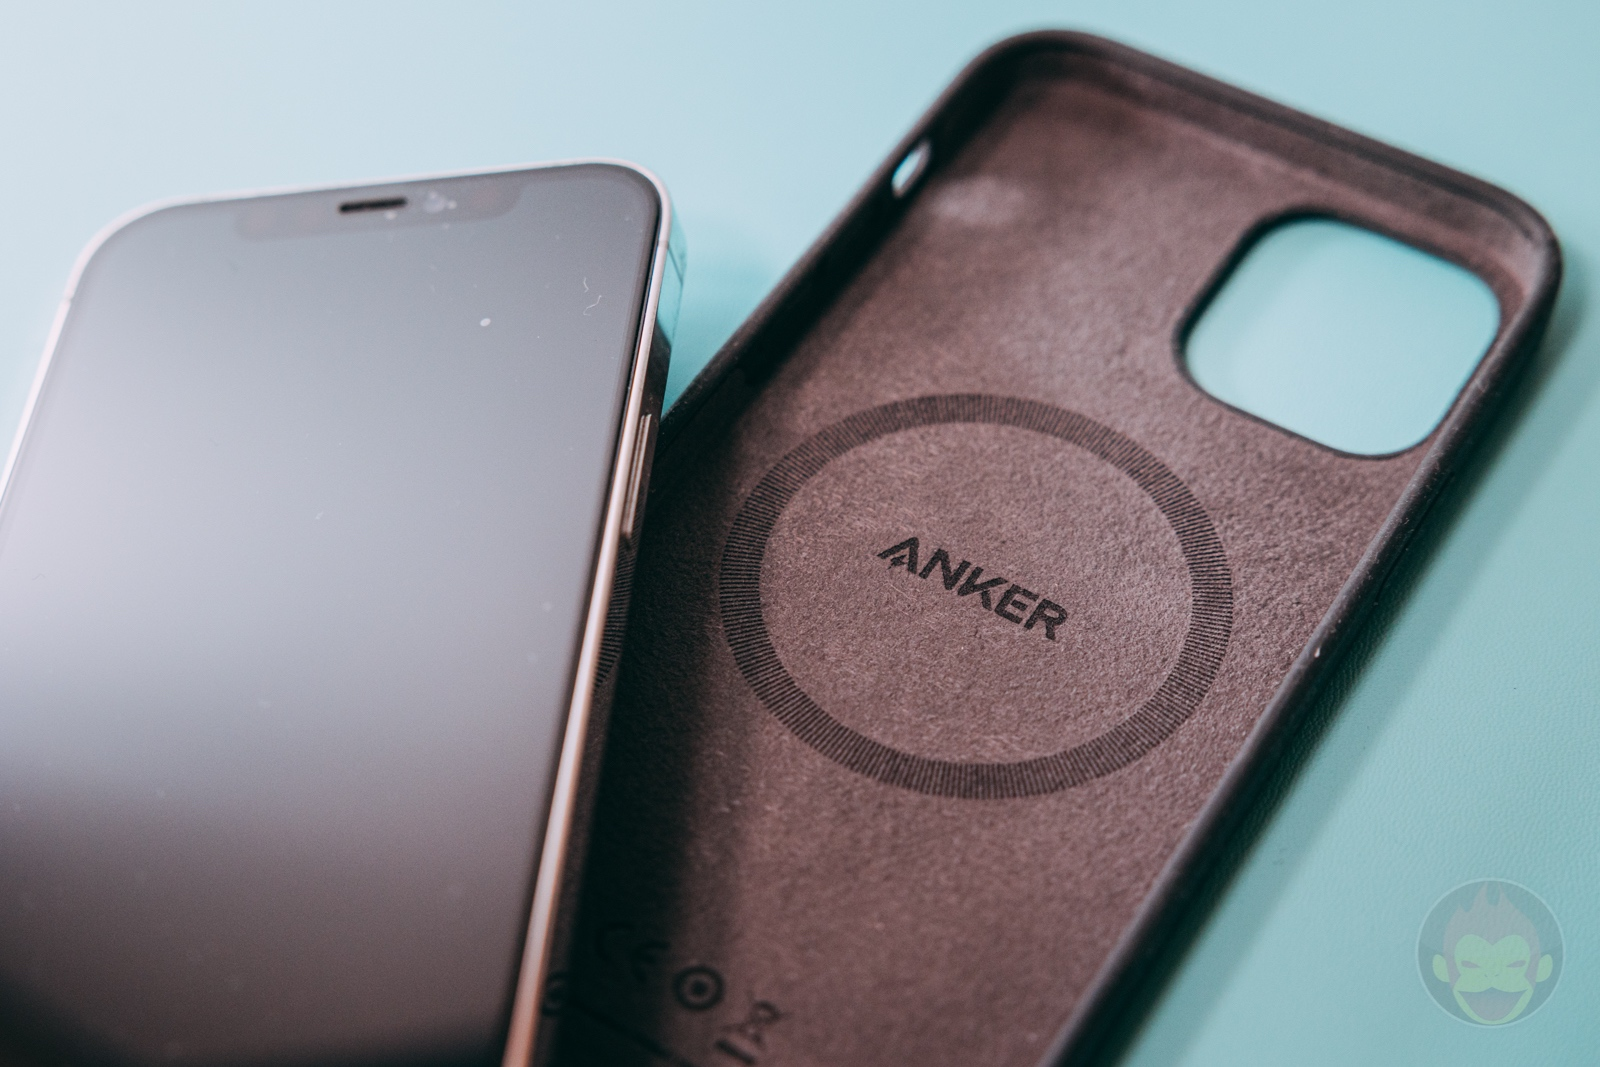 Anker Magnetic Silicone Case Review 01